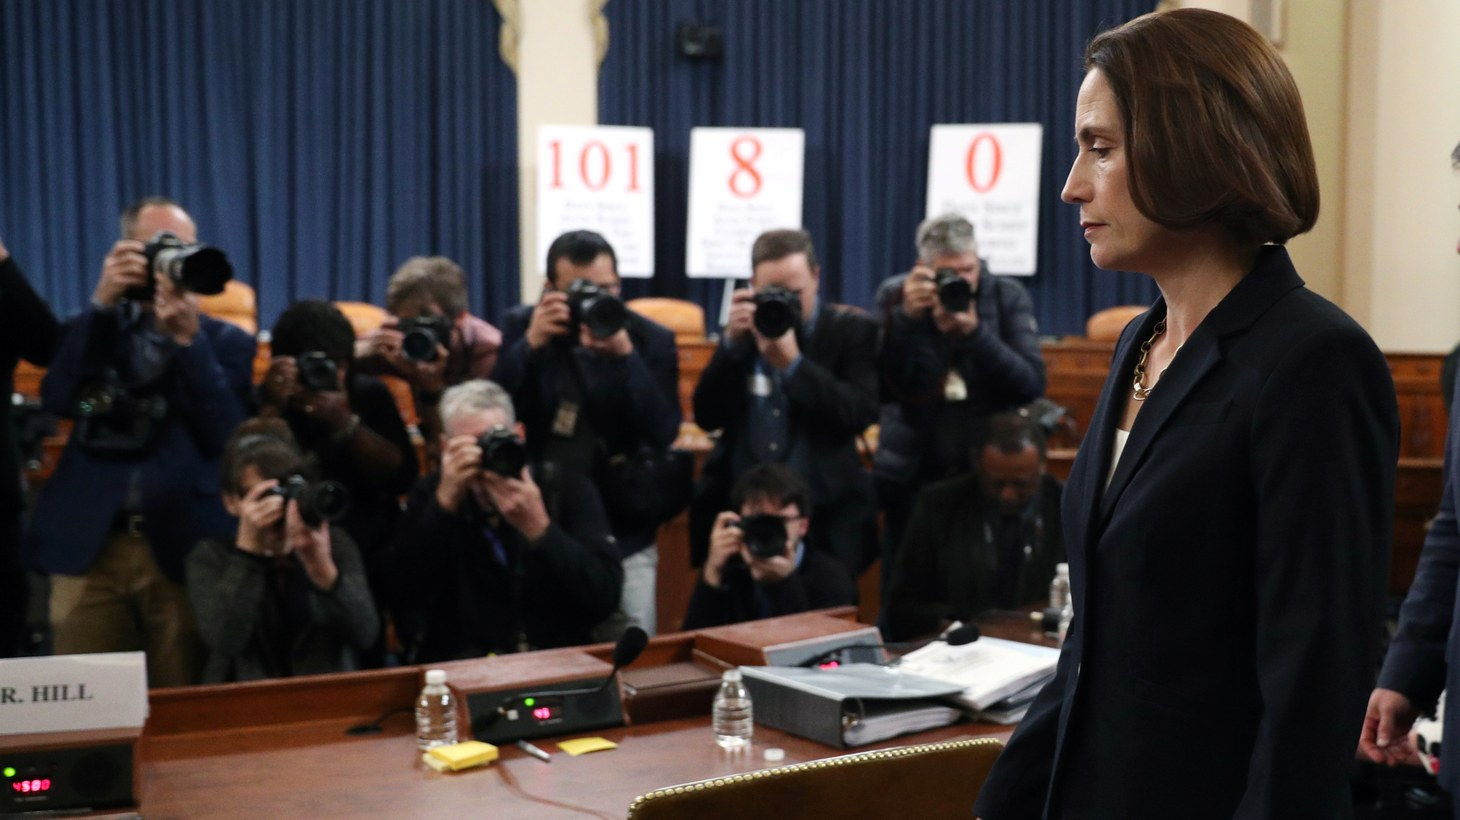 Fiona Hill, former senior director for Europe and Russia on the National Security Council, returns after a recess break at a House Intelligence Committee hearing as part of the impeachment inquiry into U.S. President Donald Trump on Capitol Hill in Washington, U.S., November 21, 2019.